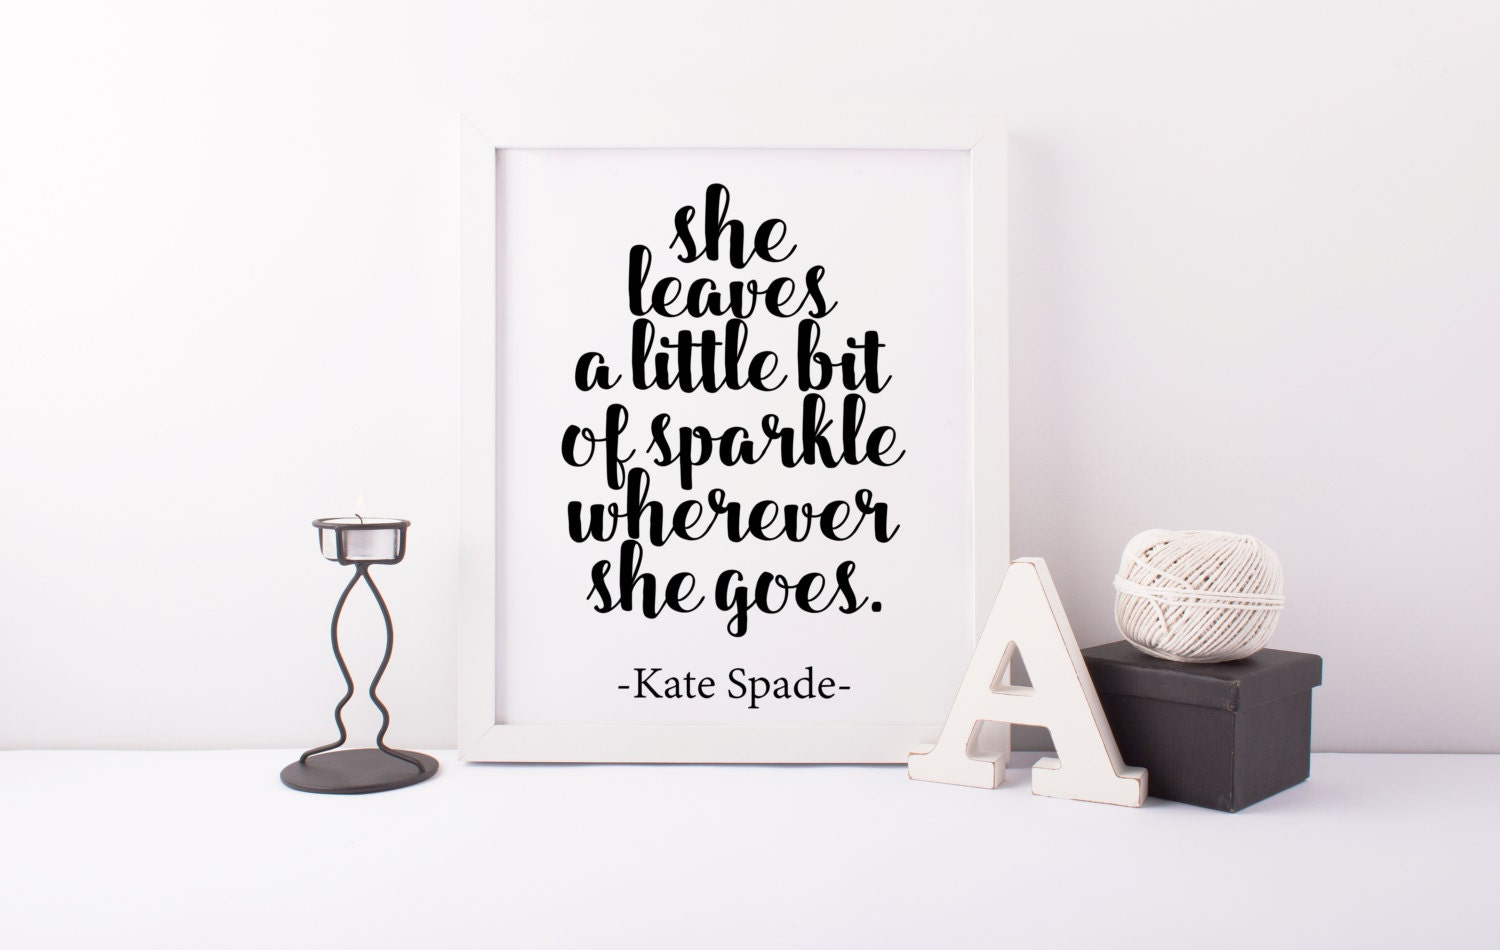 Kate Spade Quotes Kate Spade Quotes Fashion